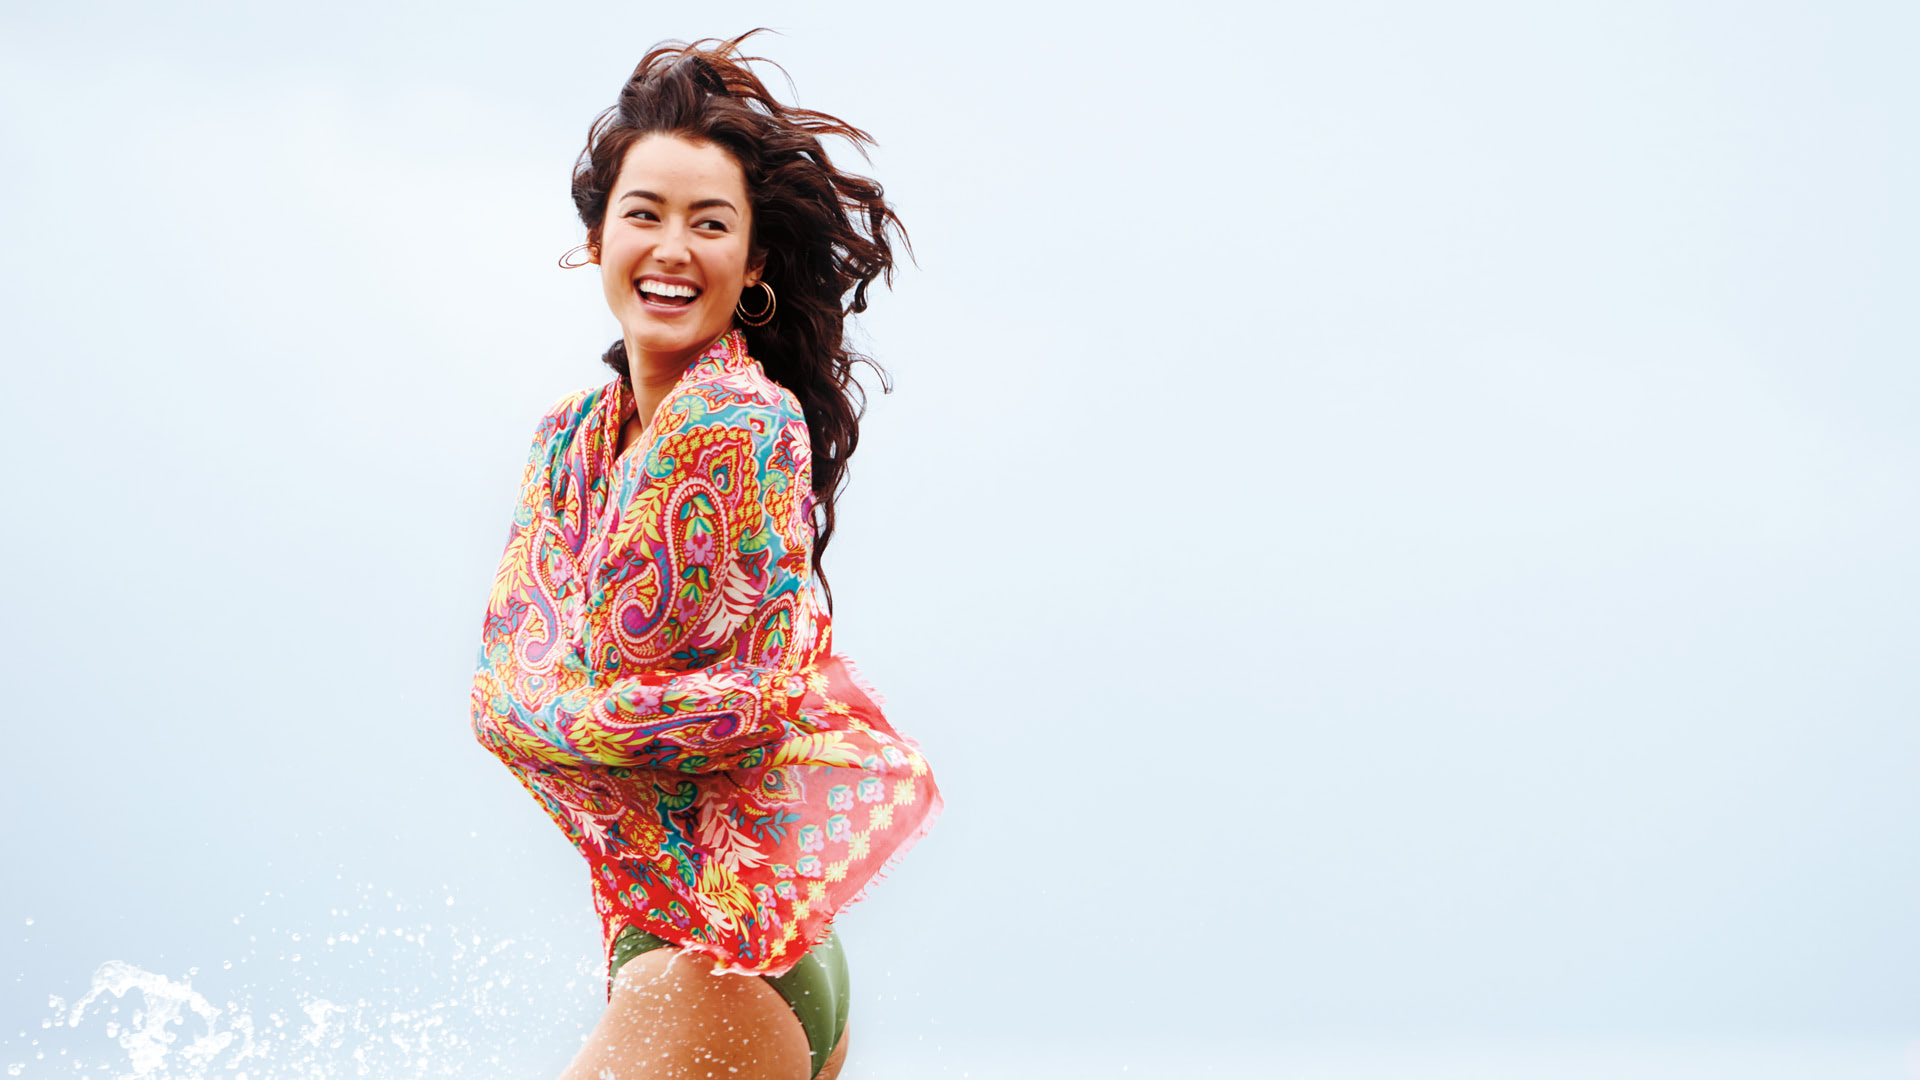 Female Splashing in Water with Vera Bradley Scarf